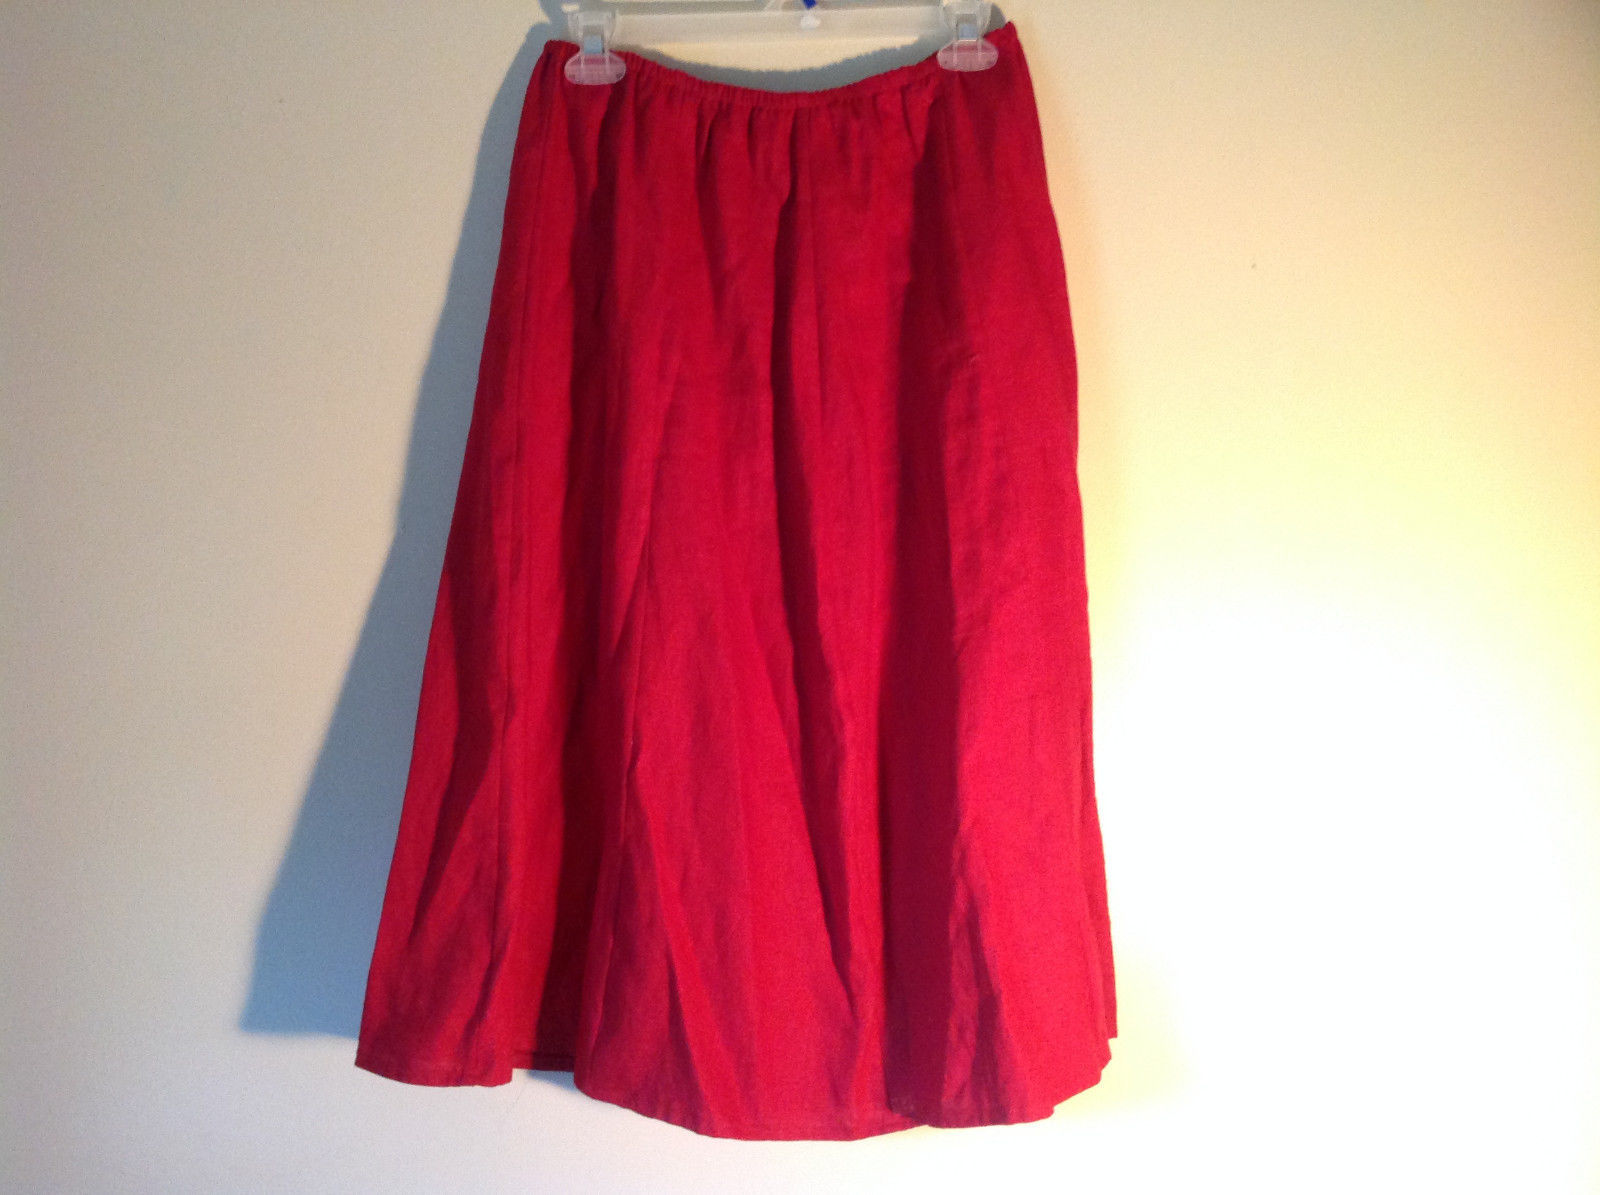 Red Elastic Waist Haldor A Line Style Skirt Made in USA Size M to L